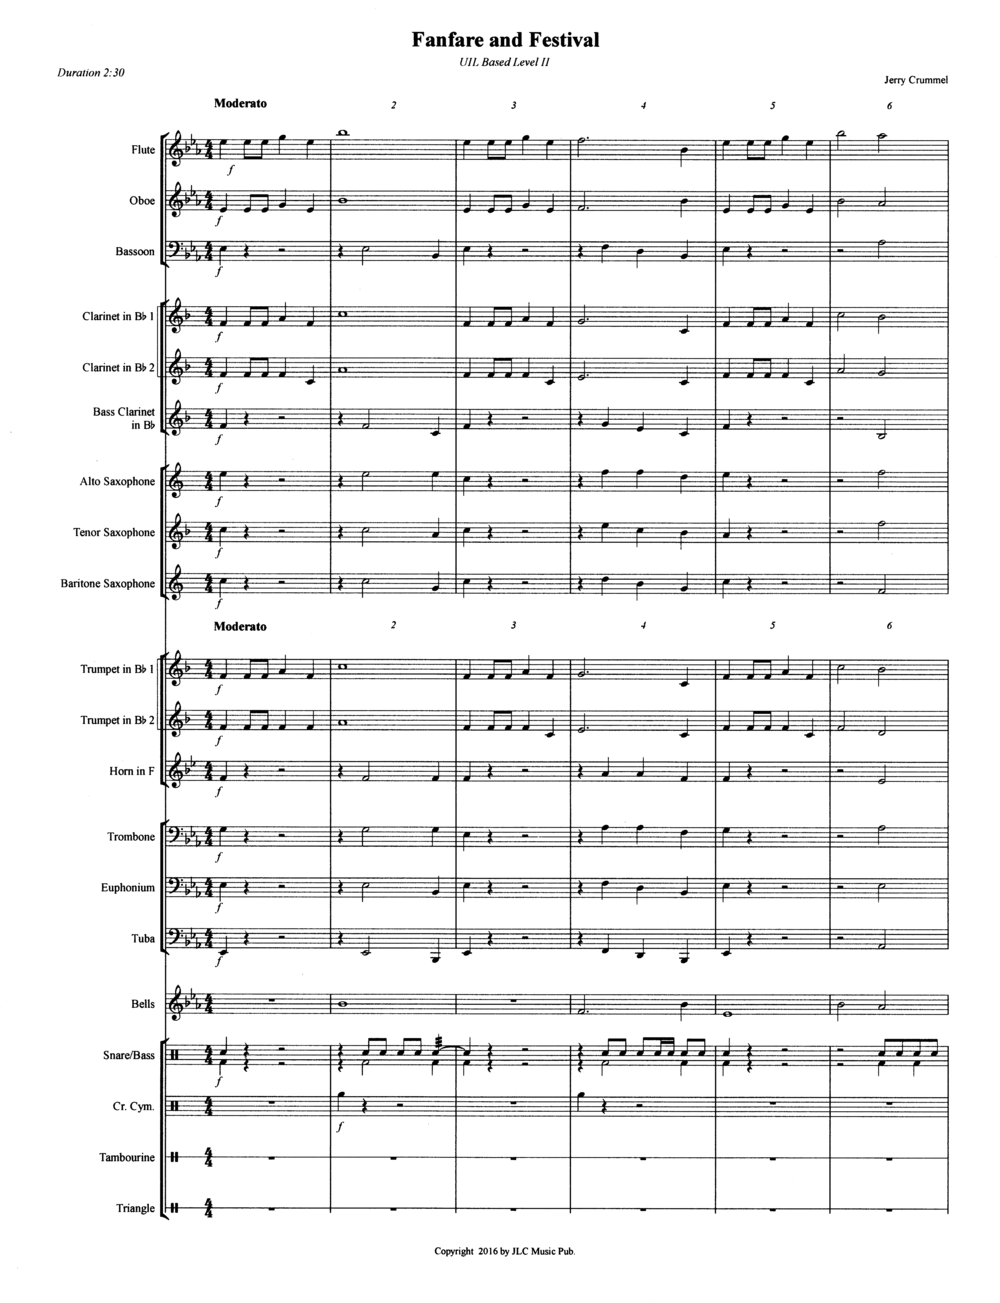 Fanfare and Festival SCORE p.108262017.png